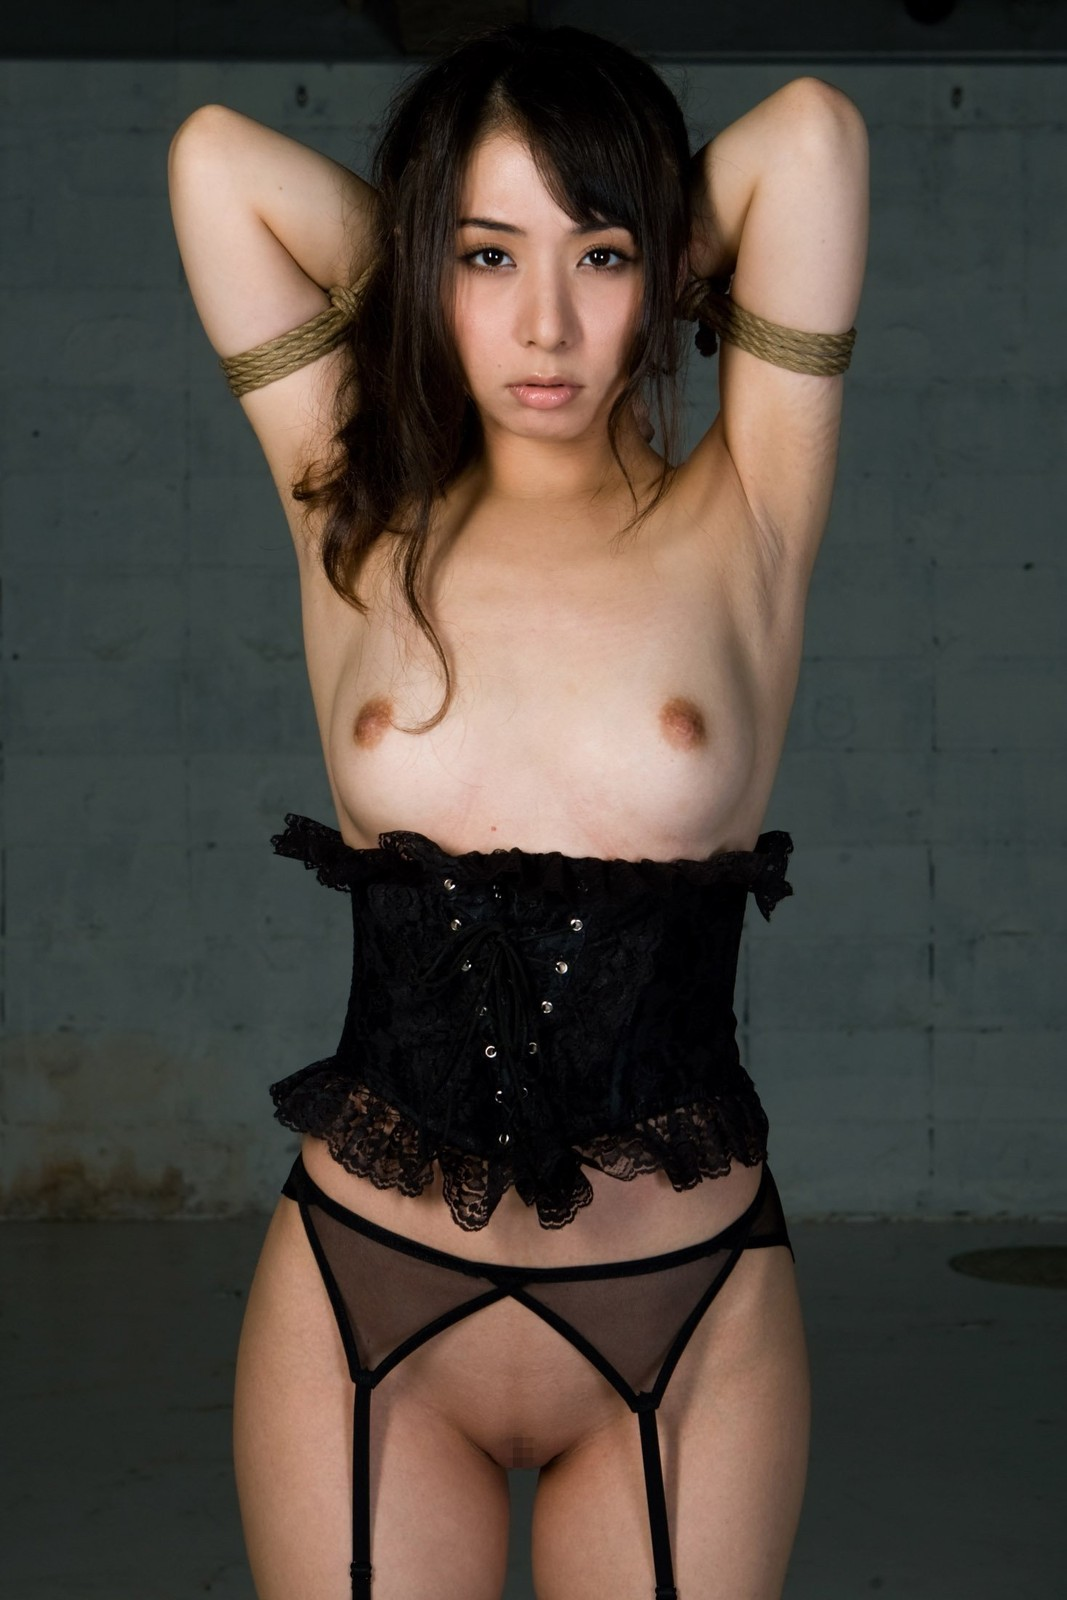 Asian model in corset and rope tied max07min:  cb15f3bd.jpg